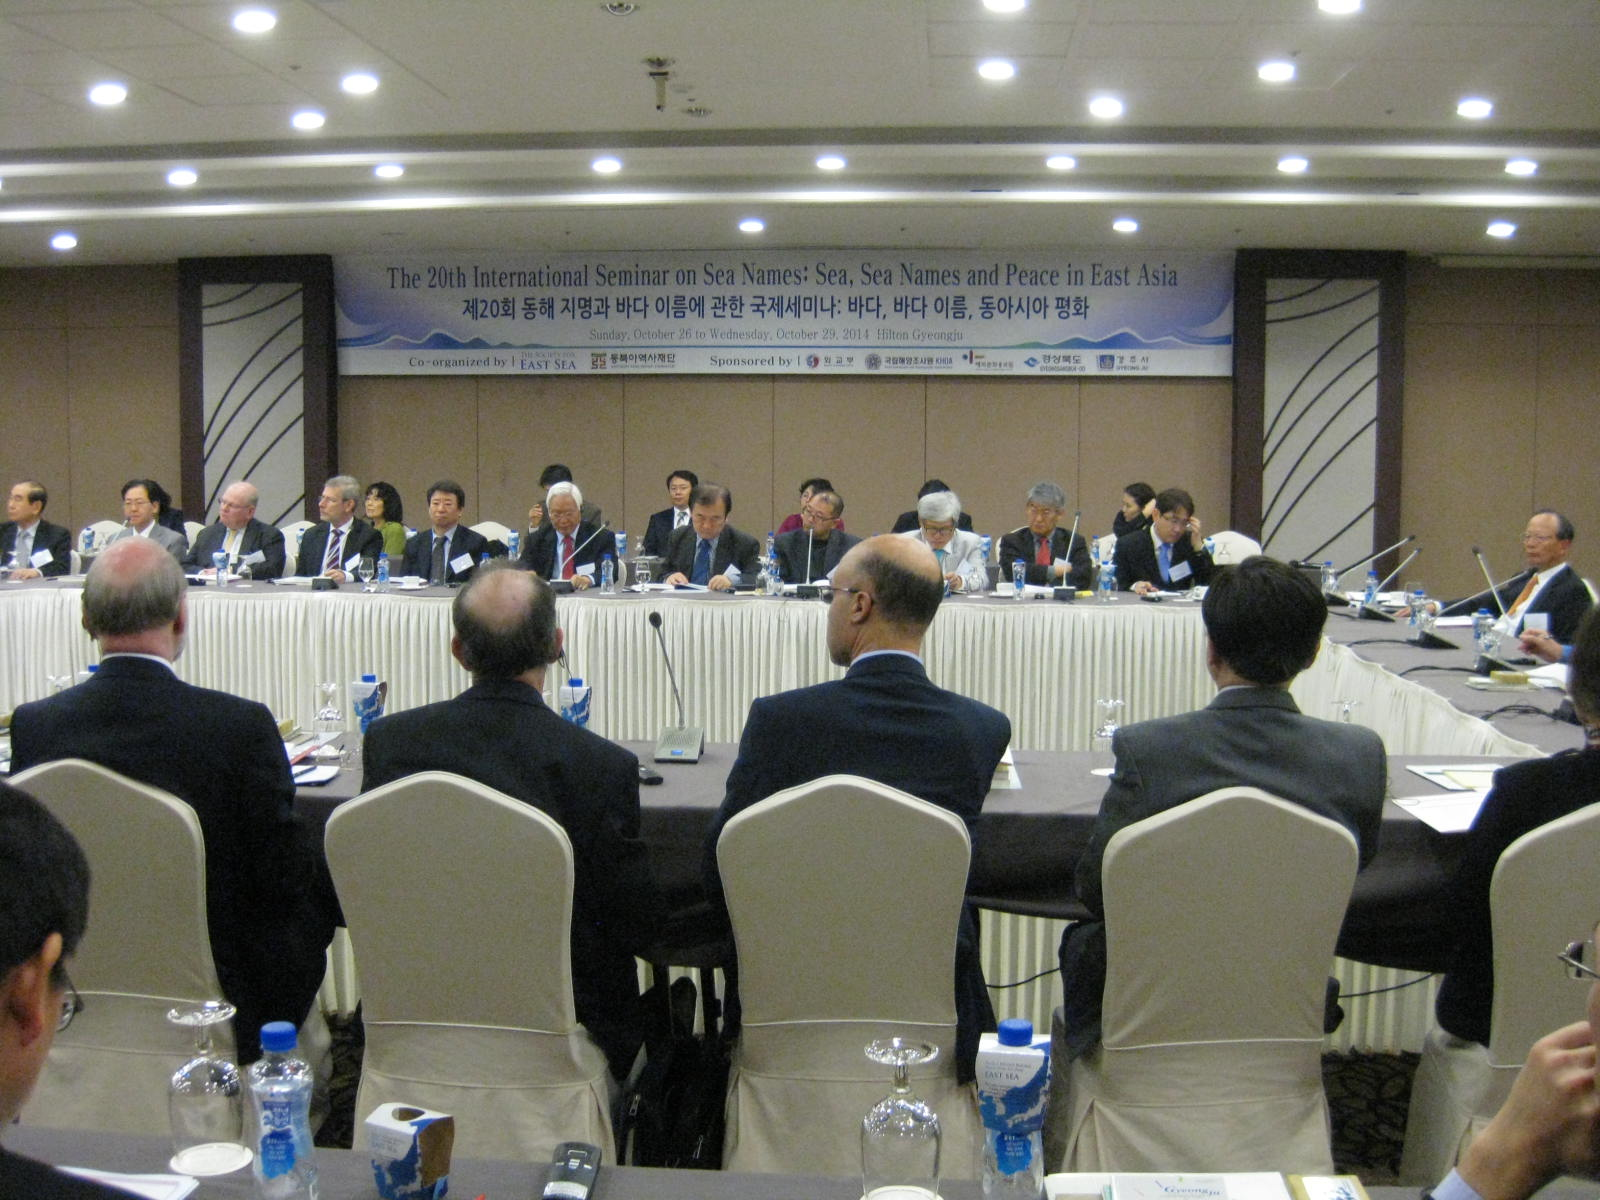 The 20th International Seminar on the Naming of the Seas co-hosted